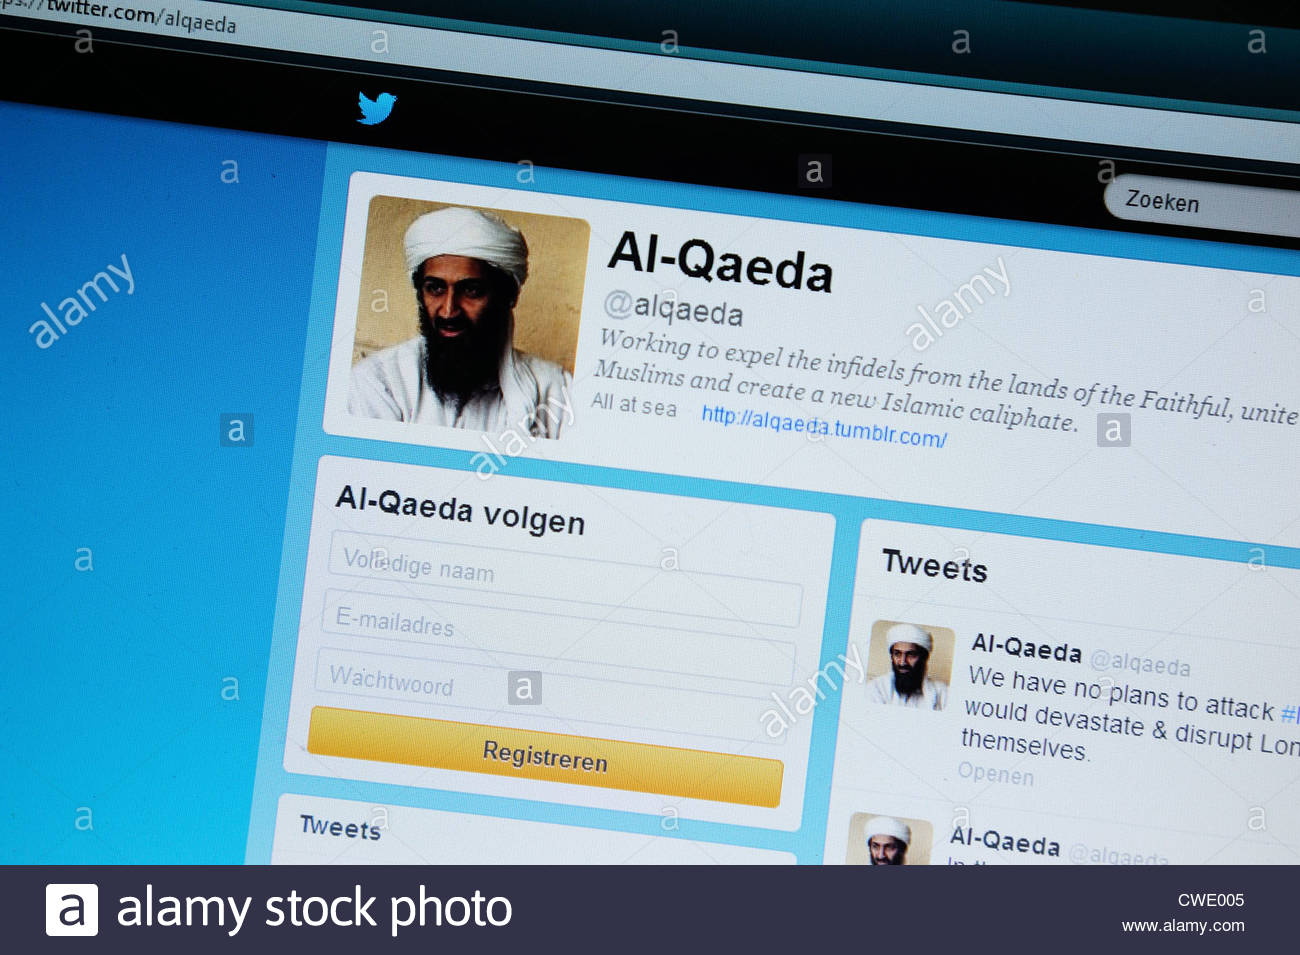 Website twitter account supposedly from Al-Qaeda. - Stock Image